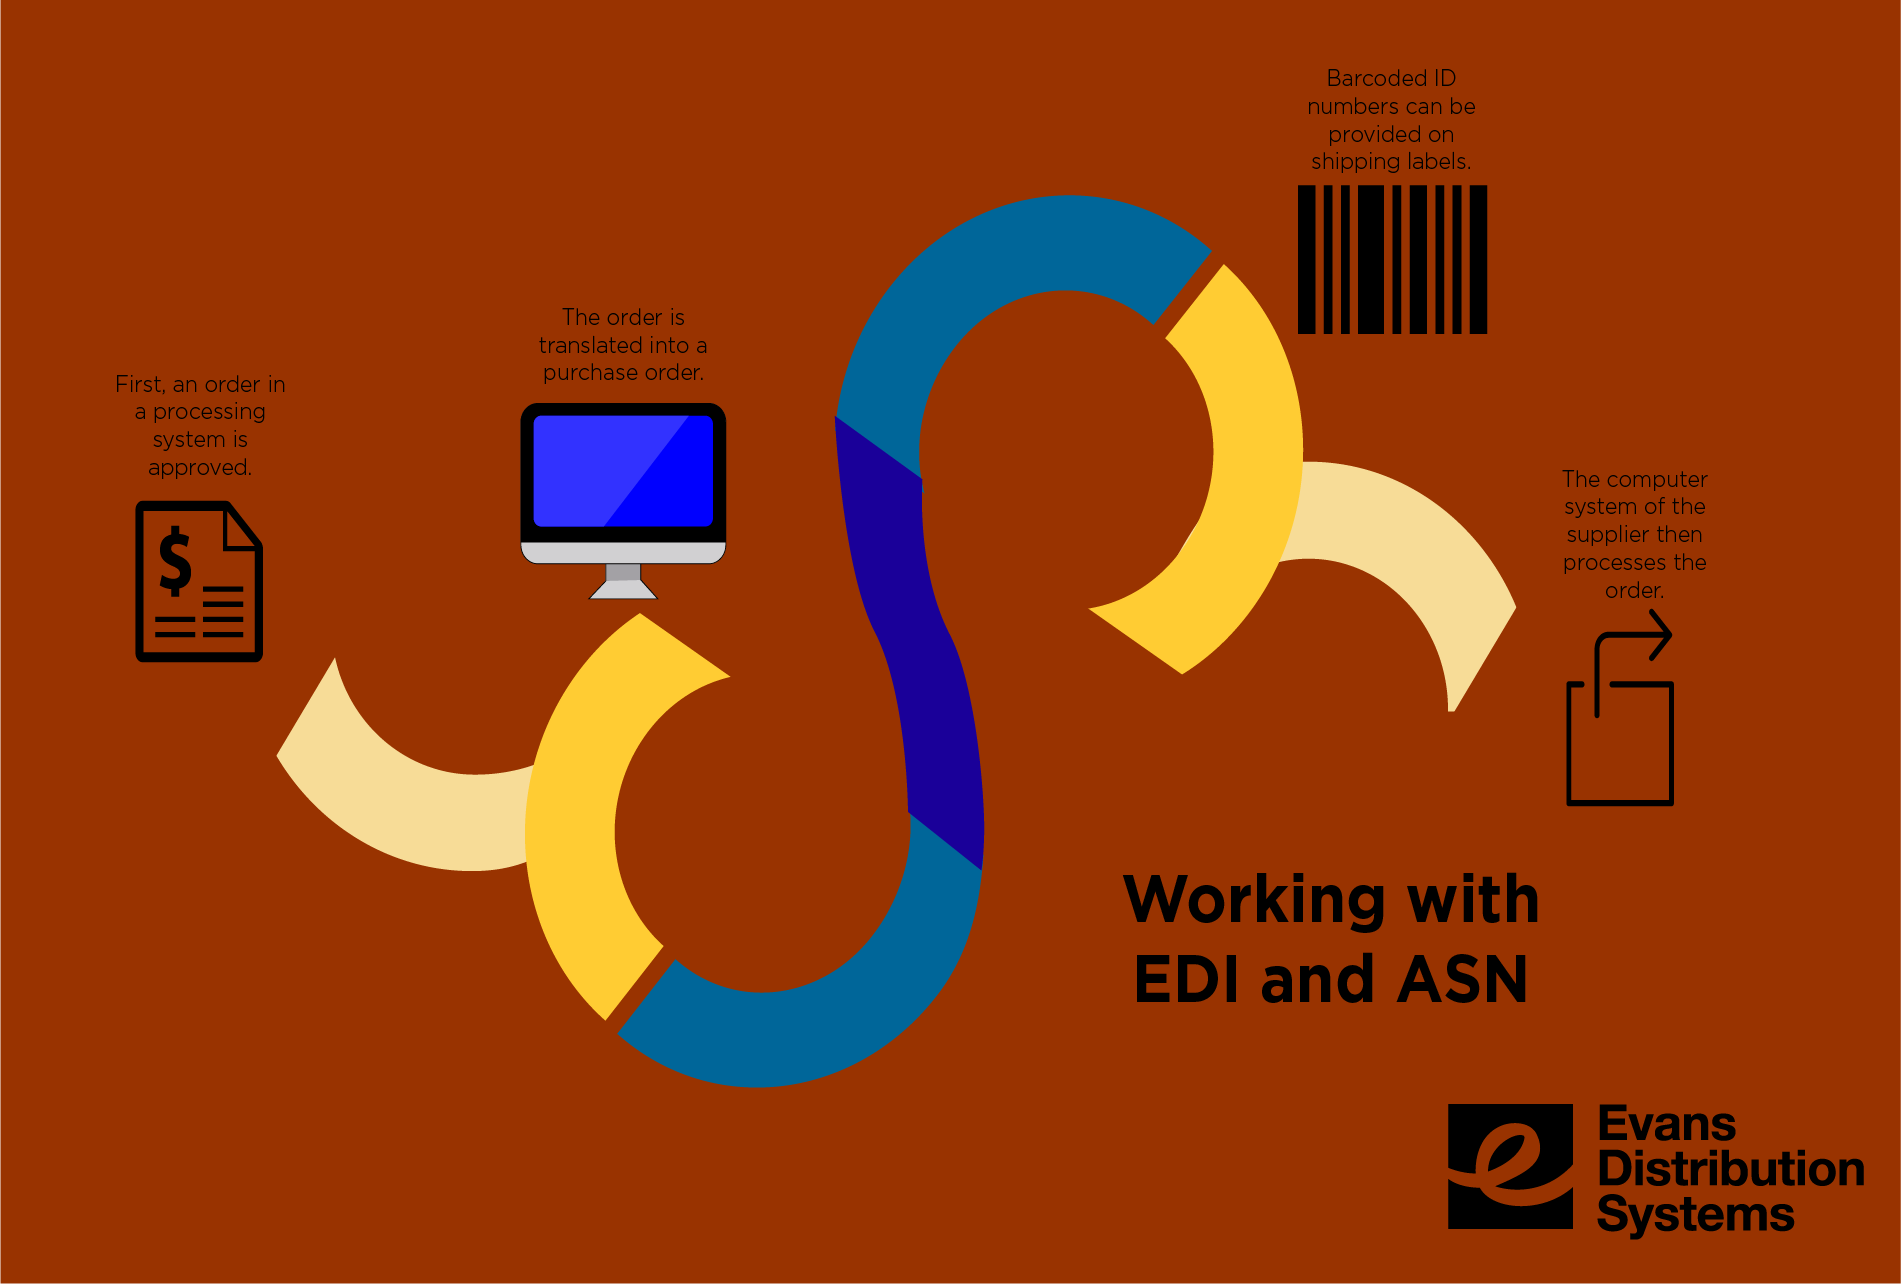 What is EDI (Electronic Data Interchange) and ASN (Advanced Shipping Notification)?